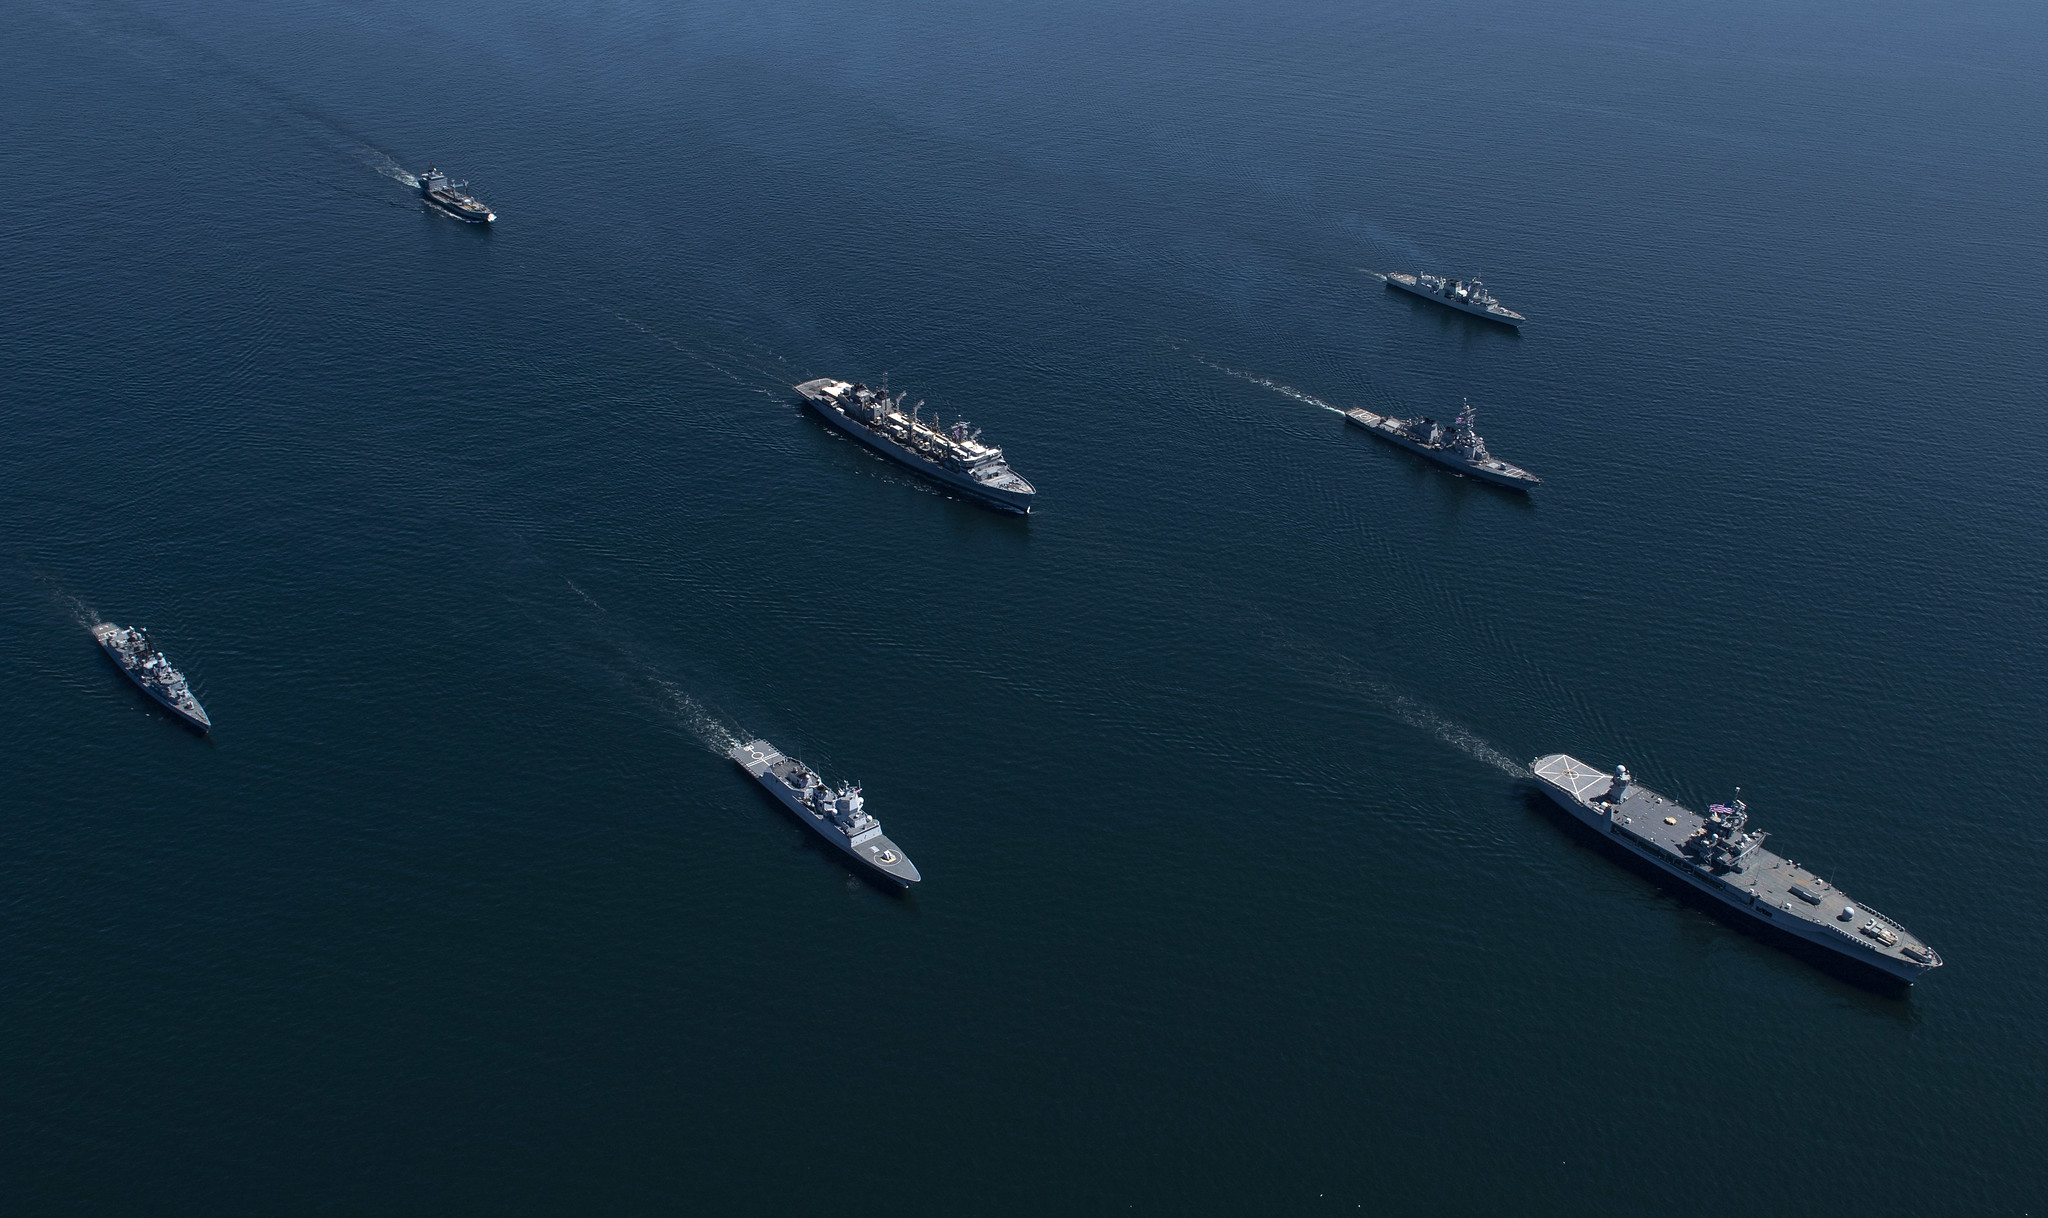 Ships from nations participating in exercise Baltic Operations (BALTOPS) 2020 sail in formation while in the Baltic Sea, June 8, 2020. The ships pictured in alphabetical order by home nation are the Royal Canadian Navy Halifax-class frigate HMCS Fredericton (FFH 337), the German navy Bremen-class frigate FGS Luebeck (F214) and the Rhone-Class replenishment oiler FGS Rhoen (A1443), the Royal Norwegian Navy Fridtjof Nansen-class frigate HNoMS Otto Suerdrup (F312), the U.S. Navy Blue Ridge-class command and control ship USS Mount Whitney (LCC 20), the Arleigh Burke-class guided-missile destroyer USS Donald Cook (DDG 75) and the Supply-class fast-combat support ship USNS Supply (T-AOE 6). (MC1 Kyle Steckler/Navy)